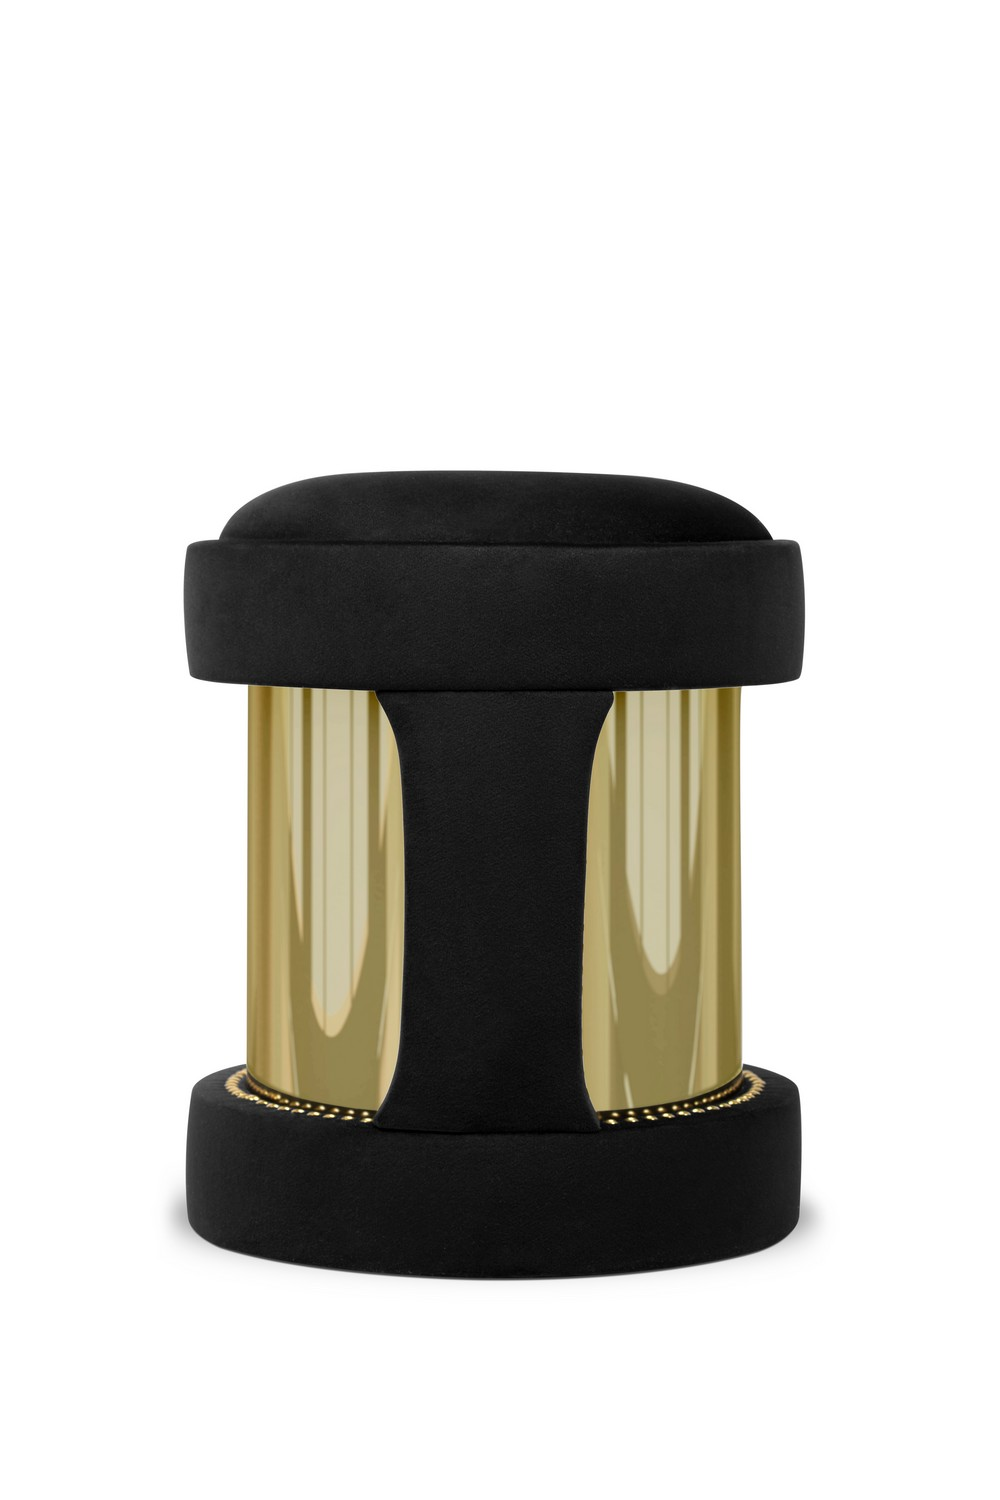 home decoration Home Decoration: Black & Gold Trend Lives on with these Modern Stools Home Decoration Black Gold Trend Lives on with these Modern Stools 3